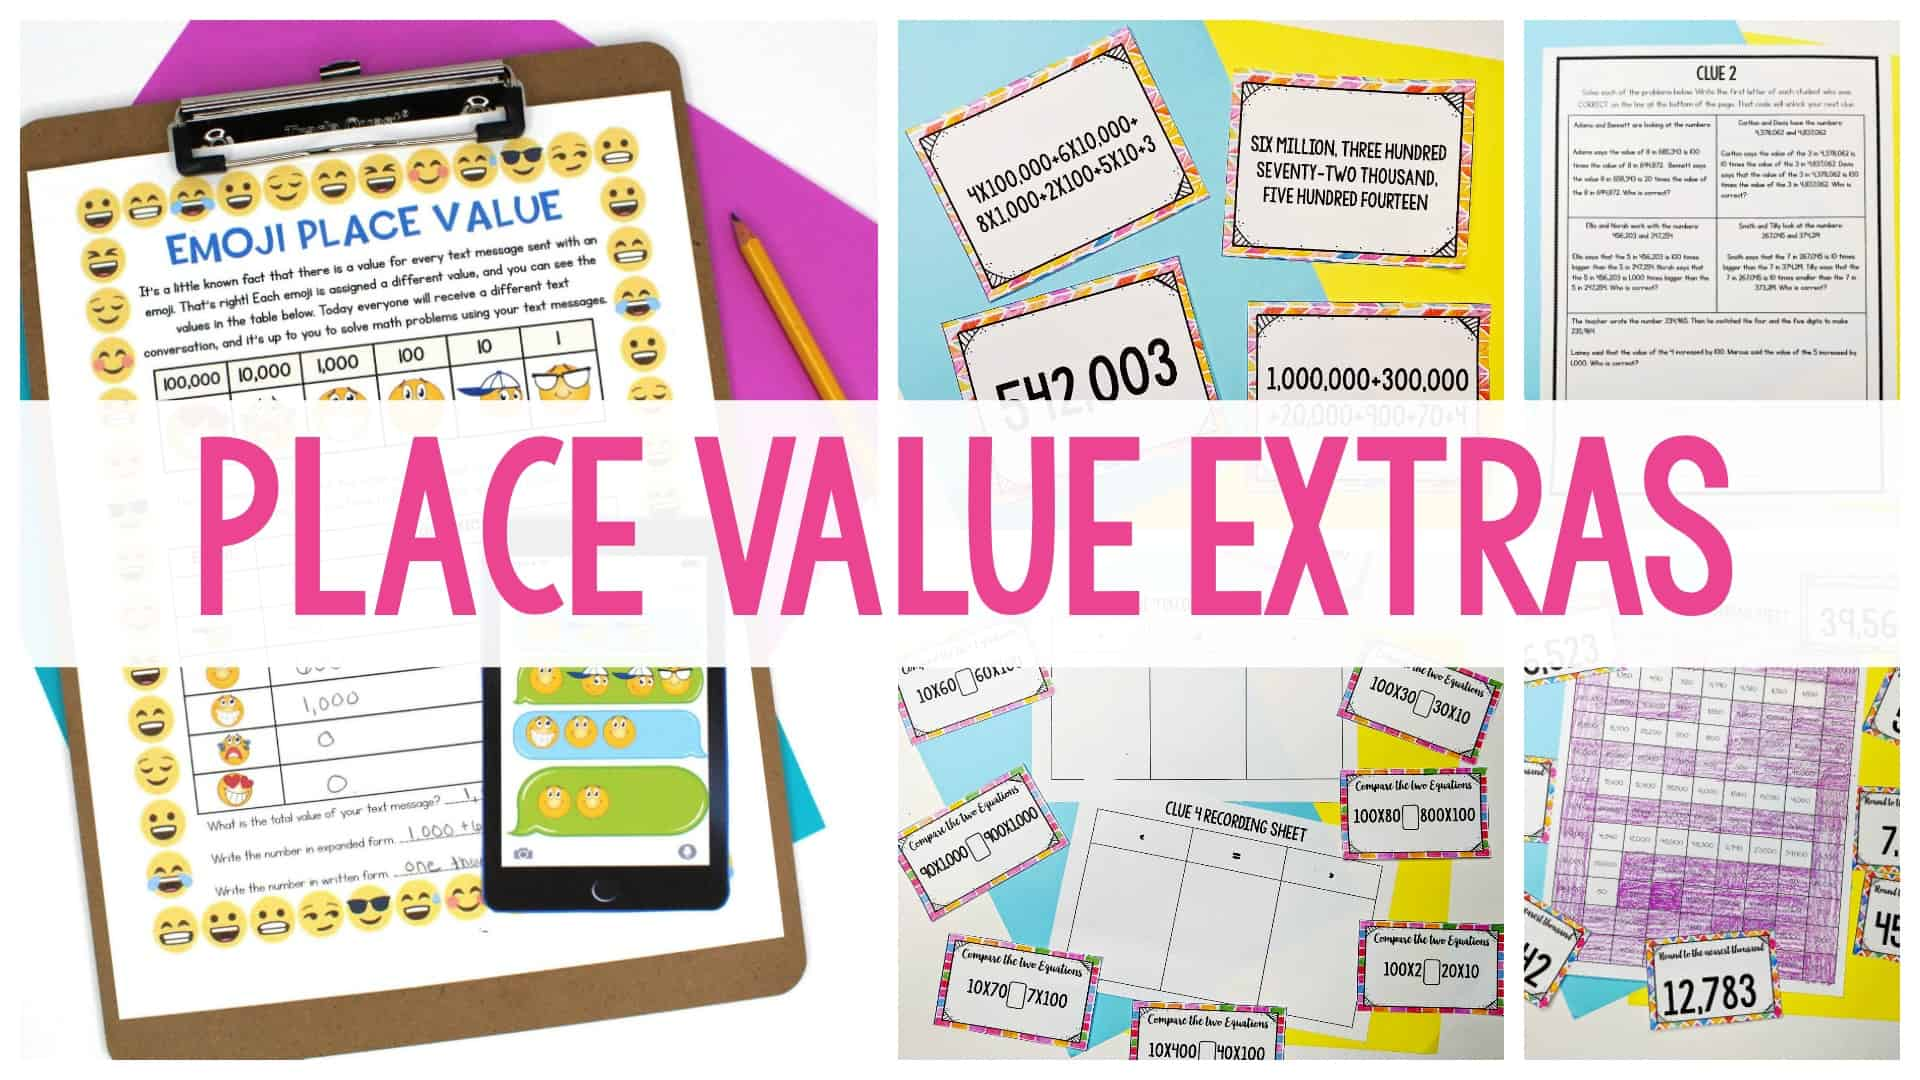 Place value extras header image with worksheets in the background